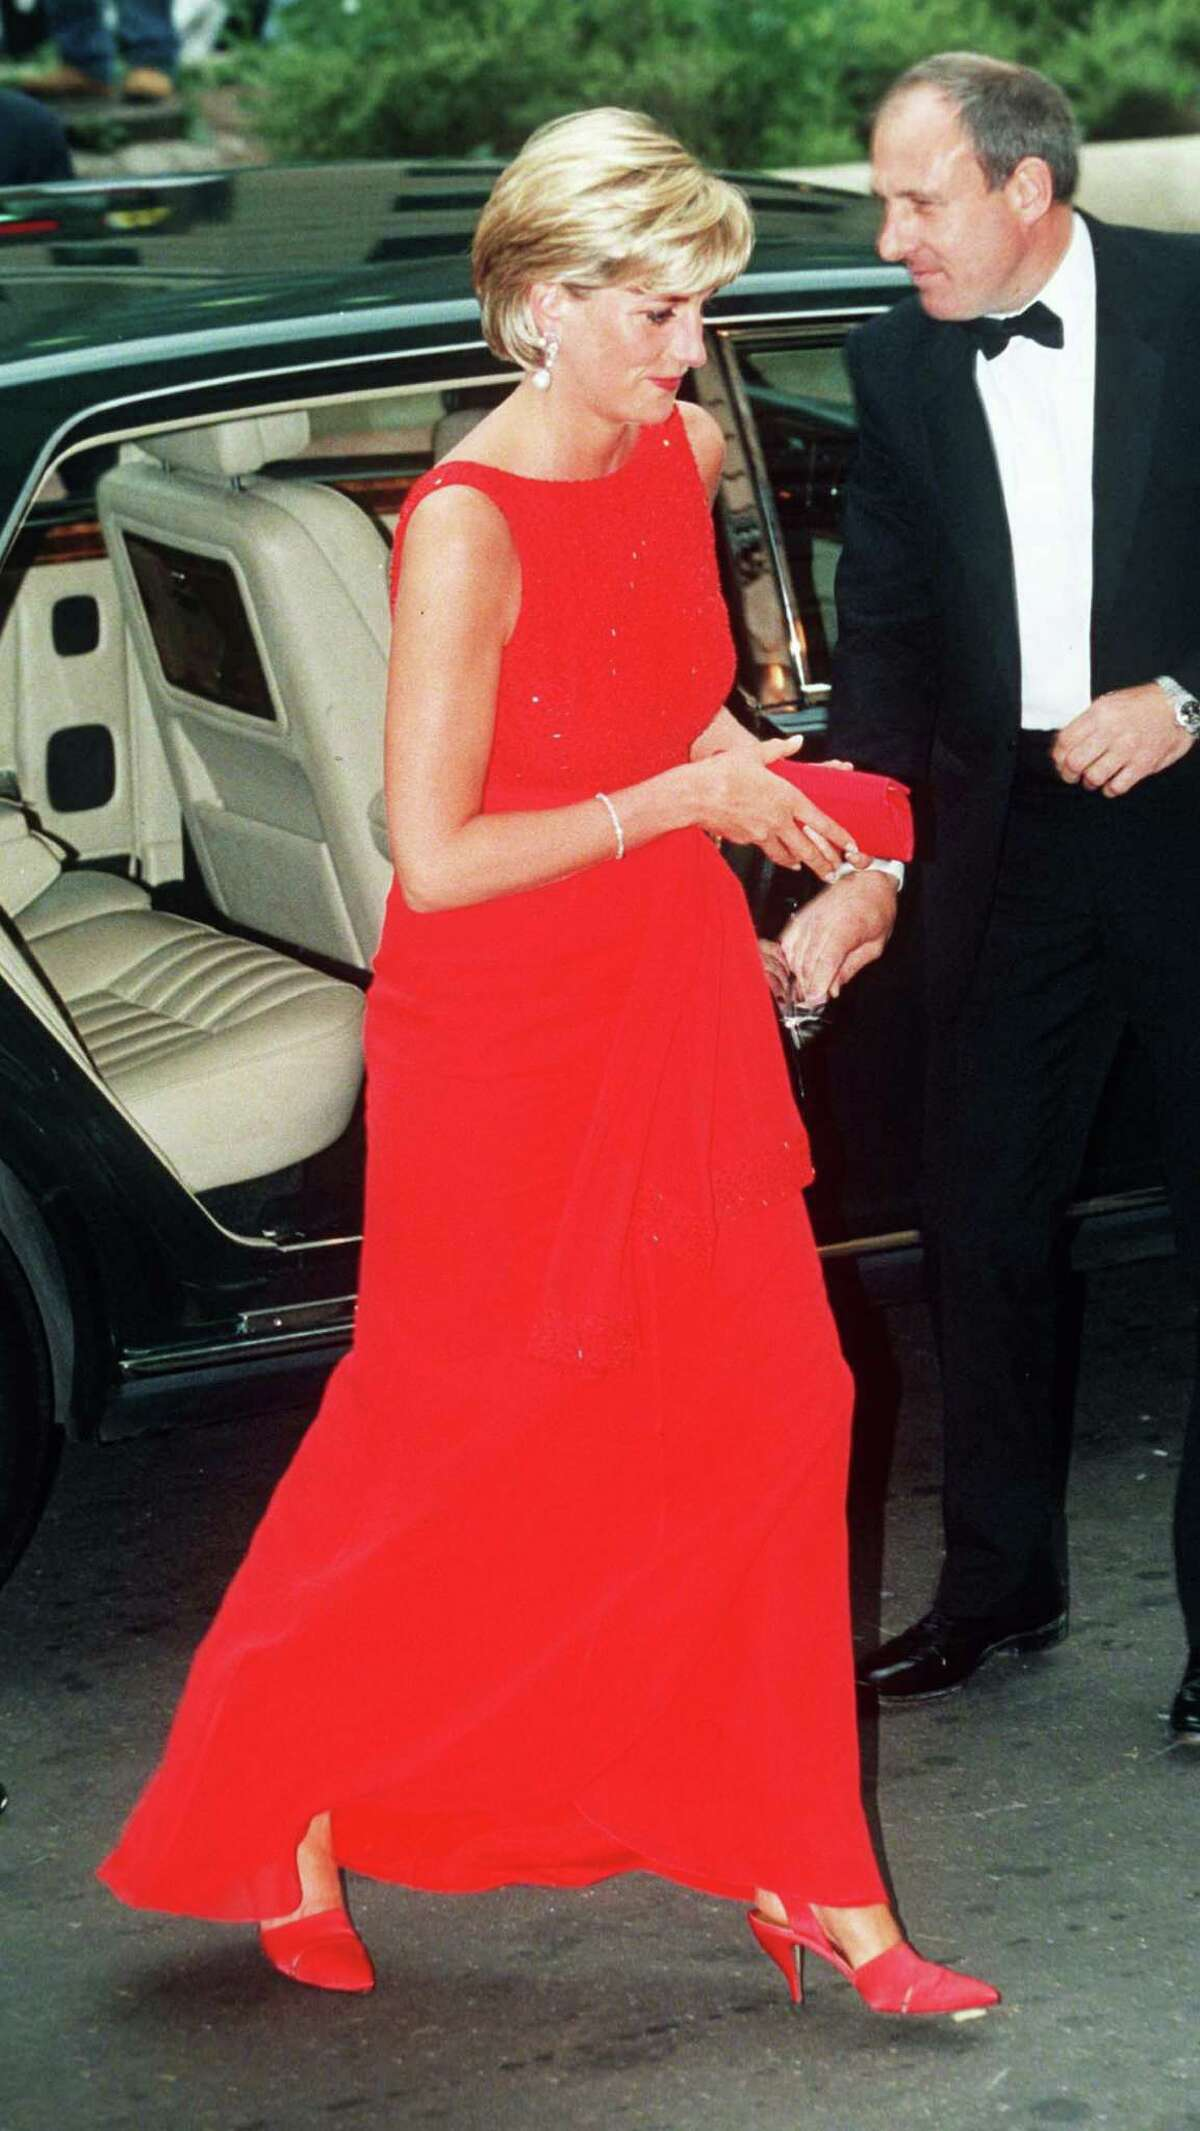 """Above: The late Princess of Wales was known to wear dresses and gowns created by Jacques Azagury. The London designer recreated some of Diana's gowns for the big screen movie """"Diana,"""" in theaters now."""